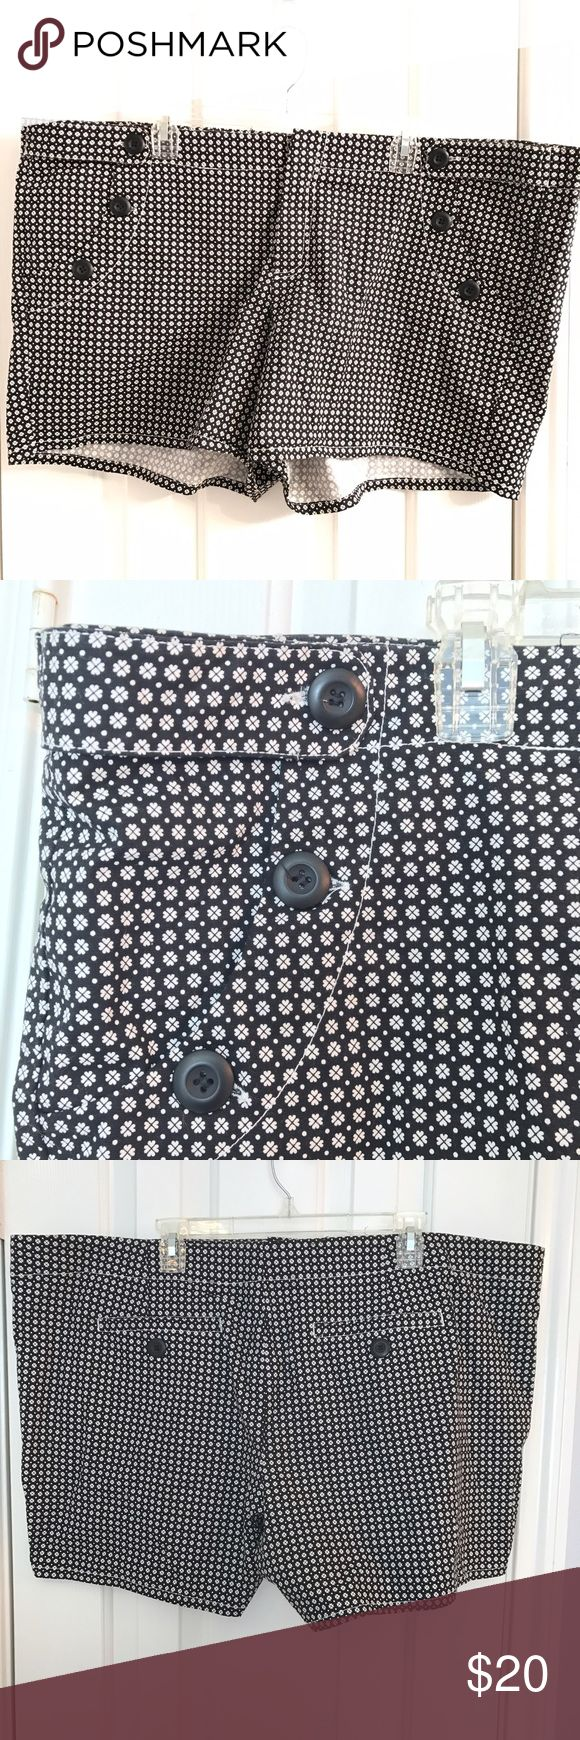 Torrid women's black and white shorts plus size 24 Torrid women's size 24W. Black with white Floral print shorts. Hidden front clasp and zipper. Front pockets with black accent buttons. Back pockets. Gently used, no flaws. torrid Shorts